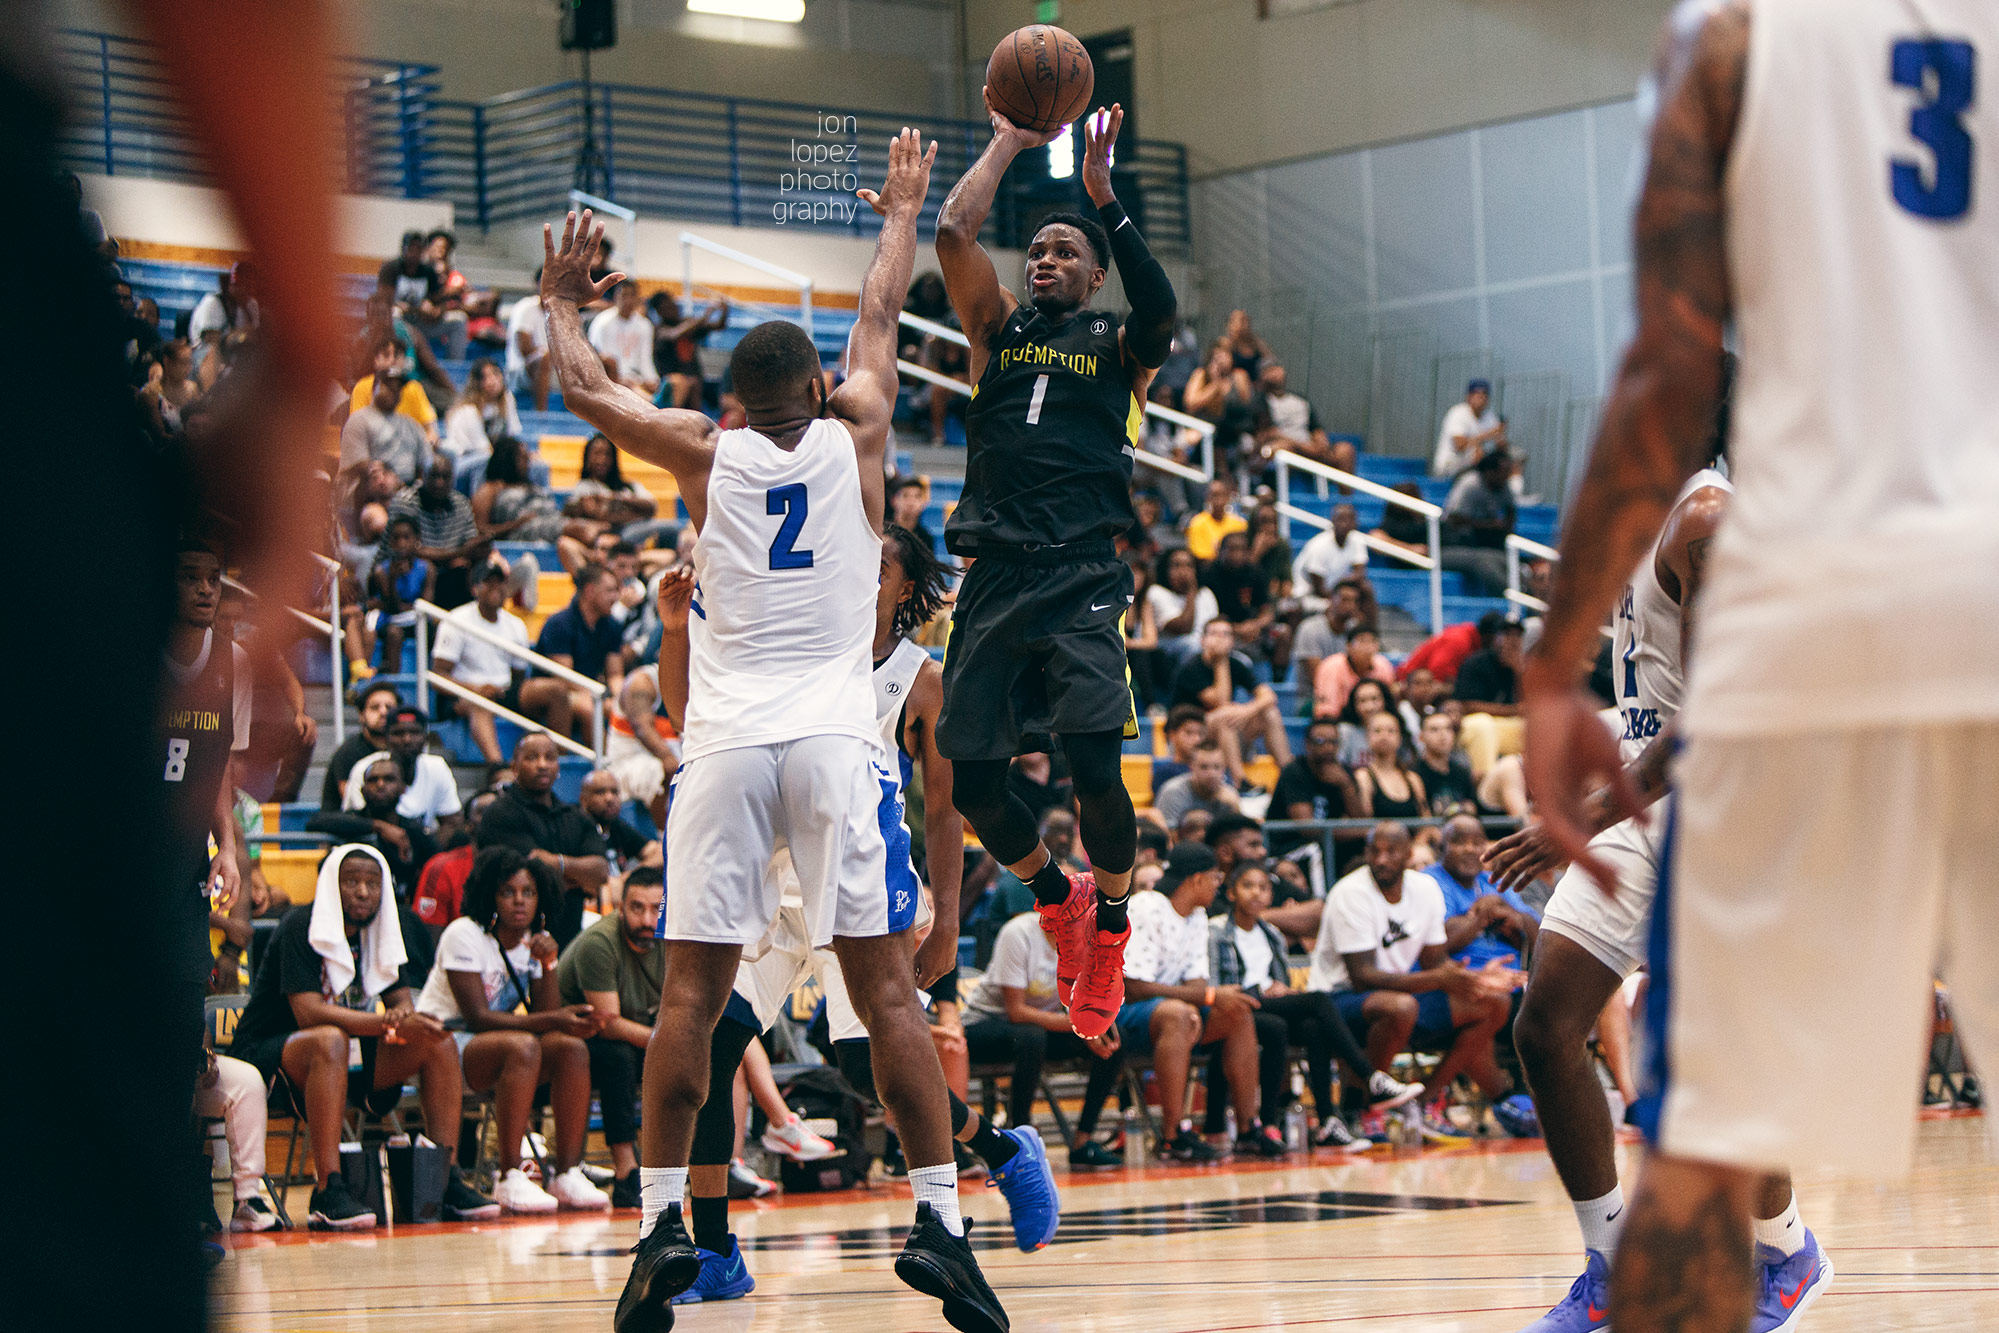 The 2018 Drew League championship lived up to all the hype in Los Angeles, CA.